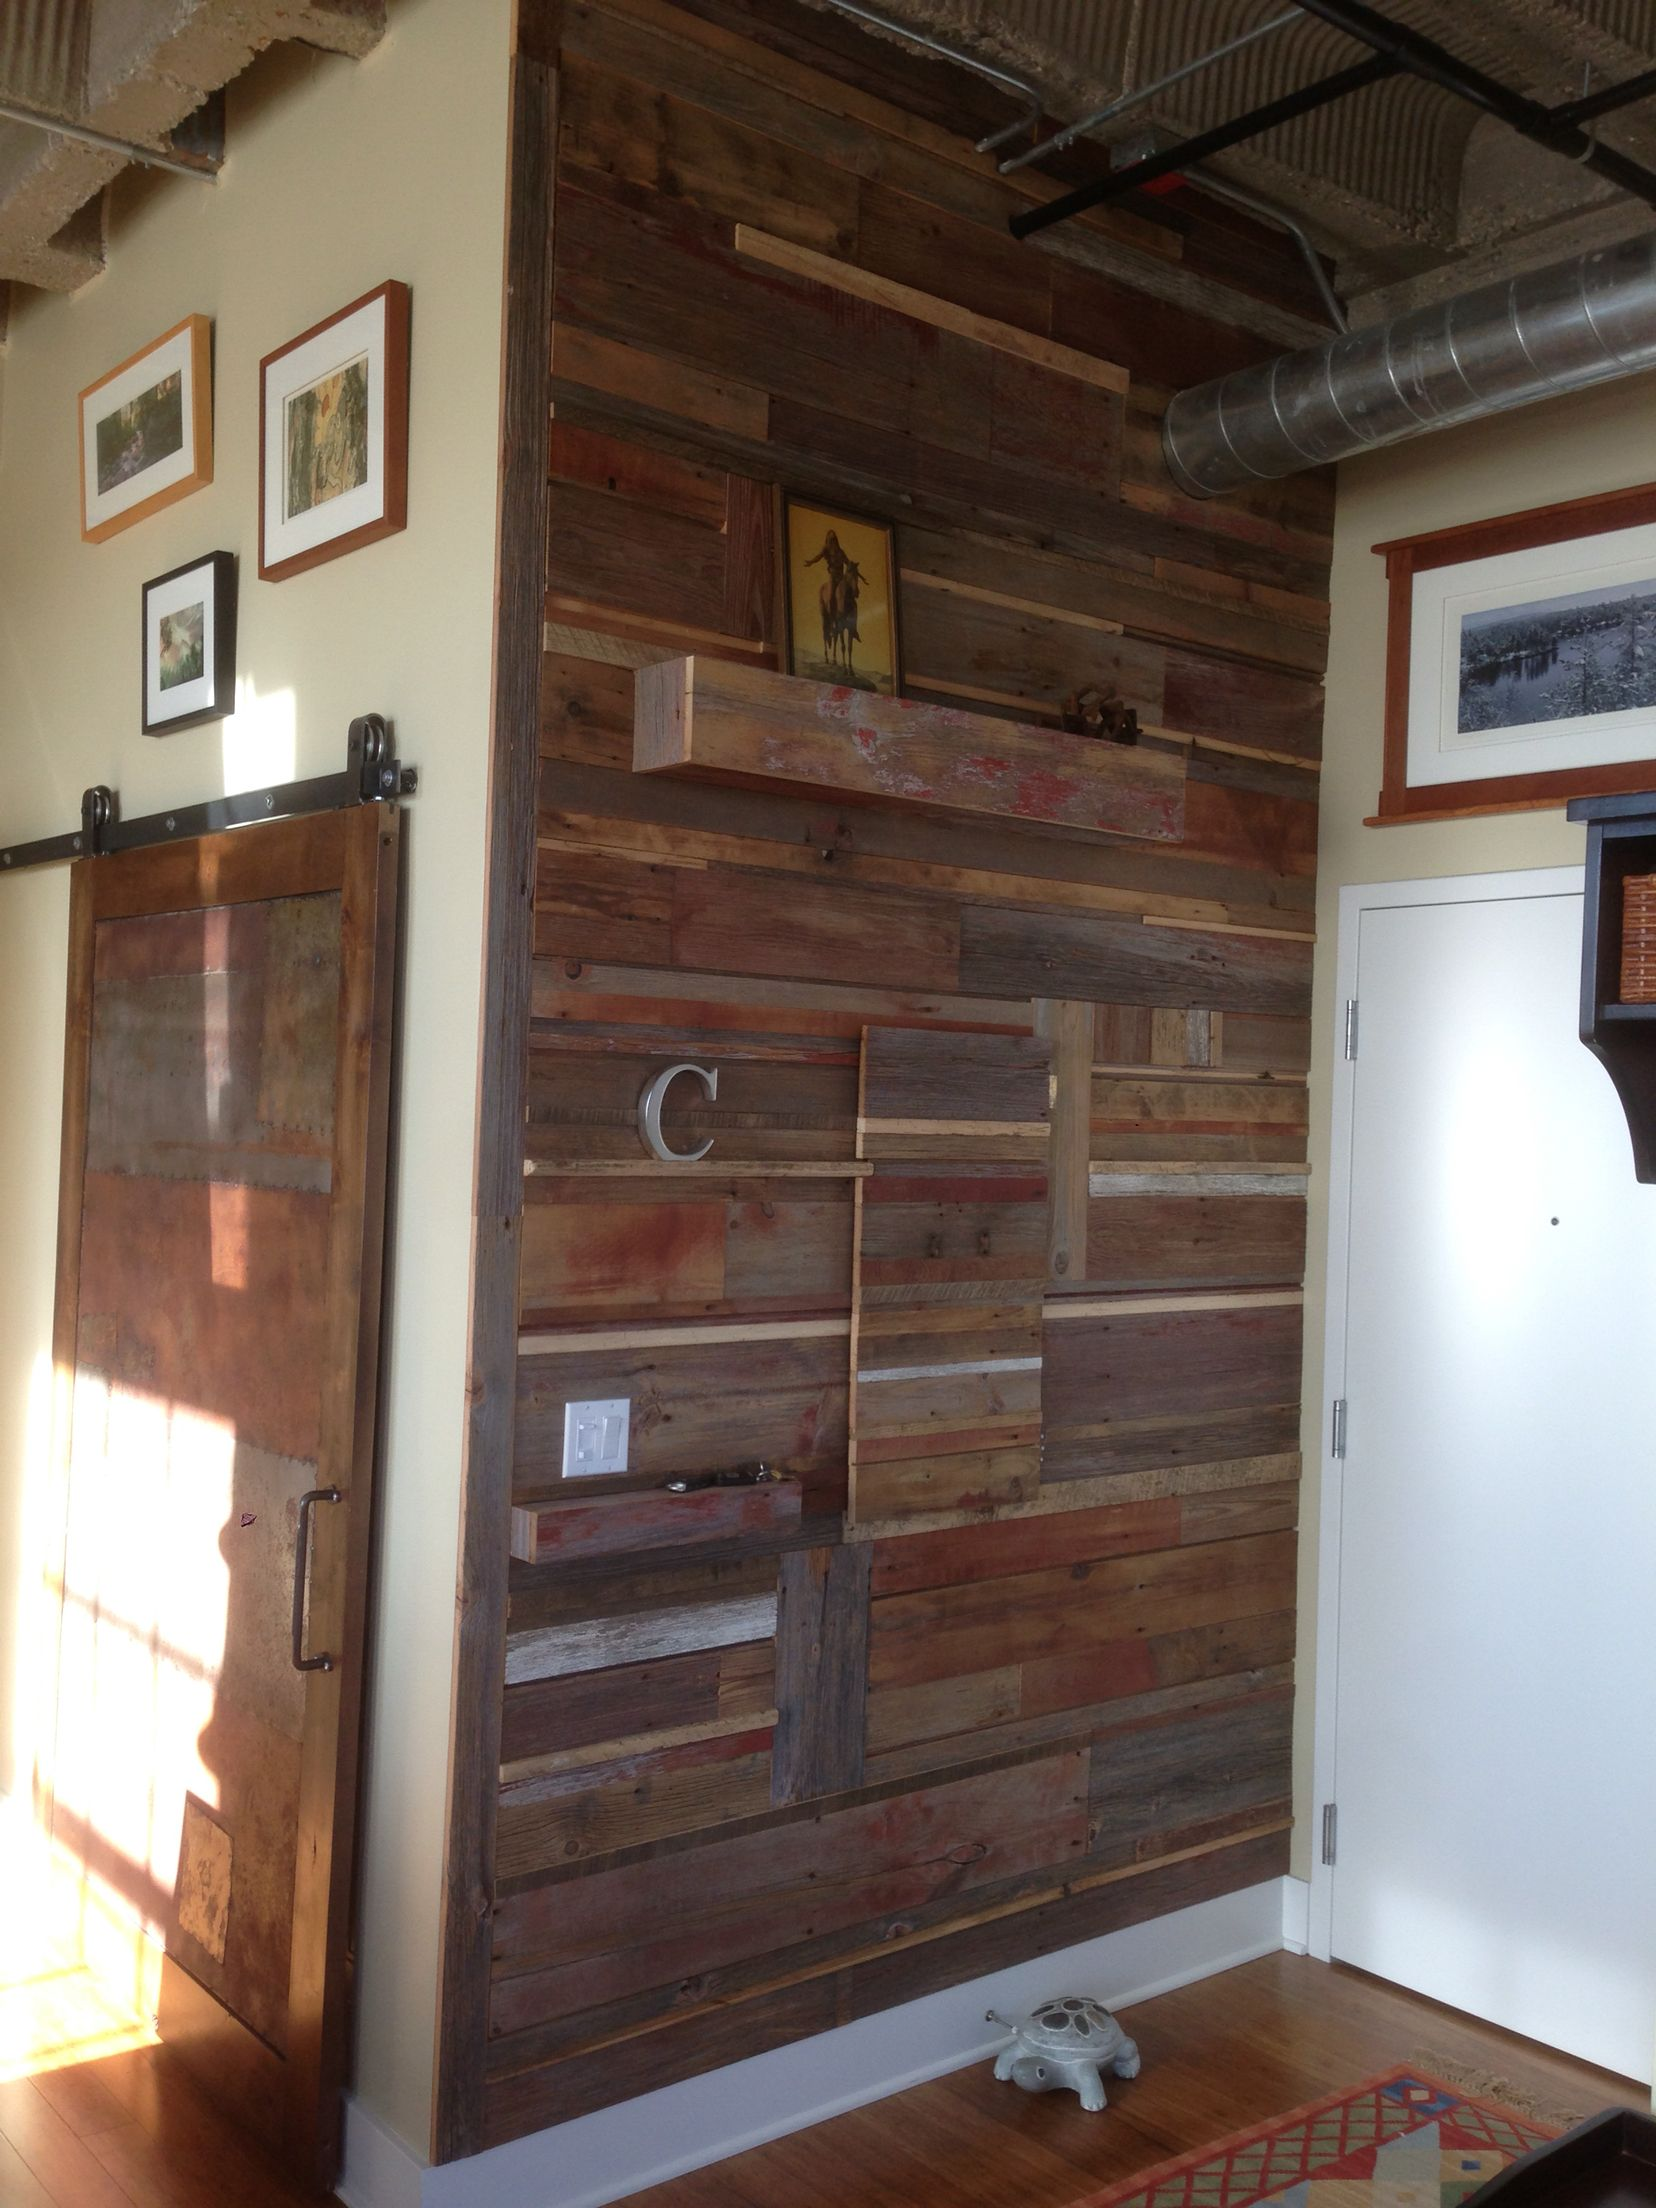 Reclaimed Barn Siding Wall By 7m Woodworking 7mwoodworking Design Interior Industrial Wood Woodworki Interior Design Rustic Rustic House Rustic Interiors